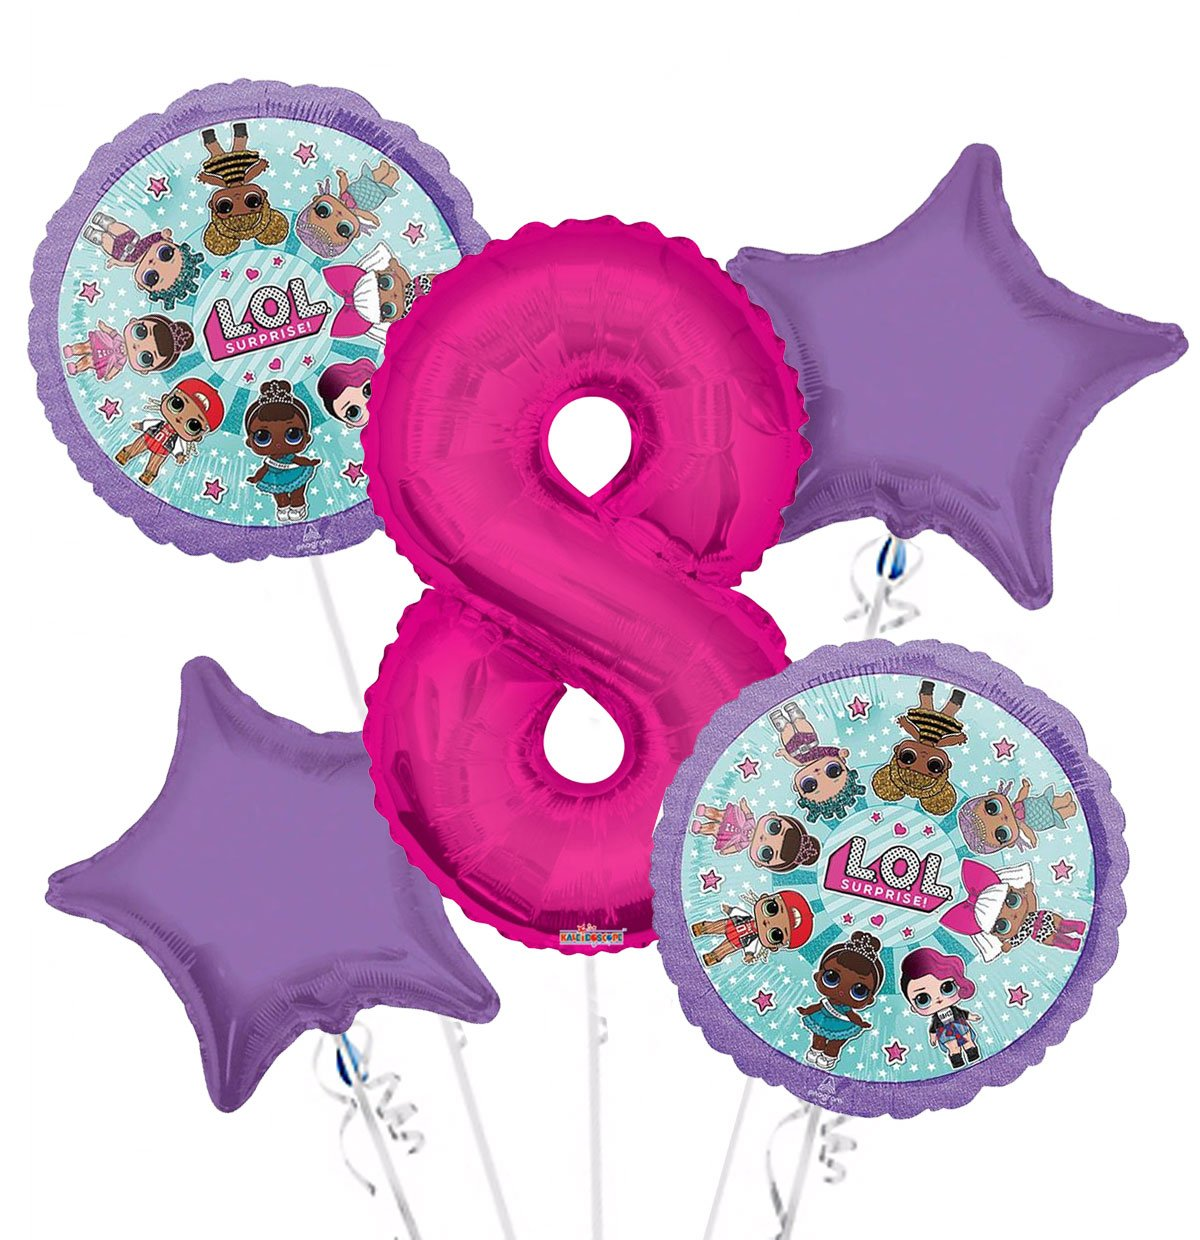 LOL Suprise Balloon Bouquet 8th Birthday 5 pcs - Party Supplies, 1 Giant Number 8 Balloon, 34in By Viva Party